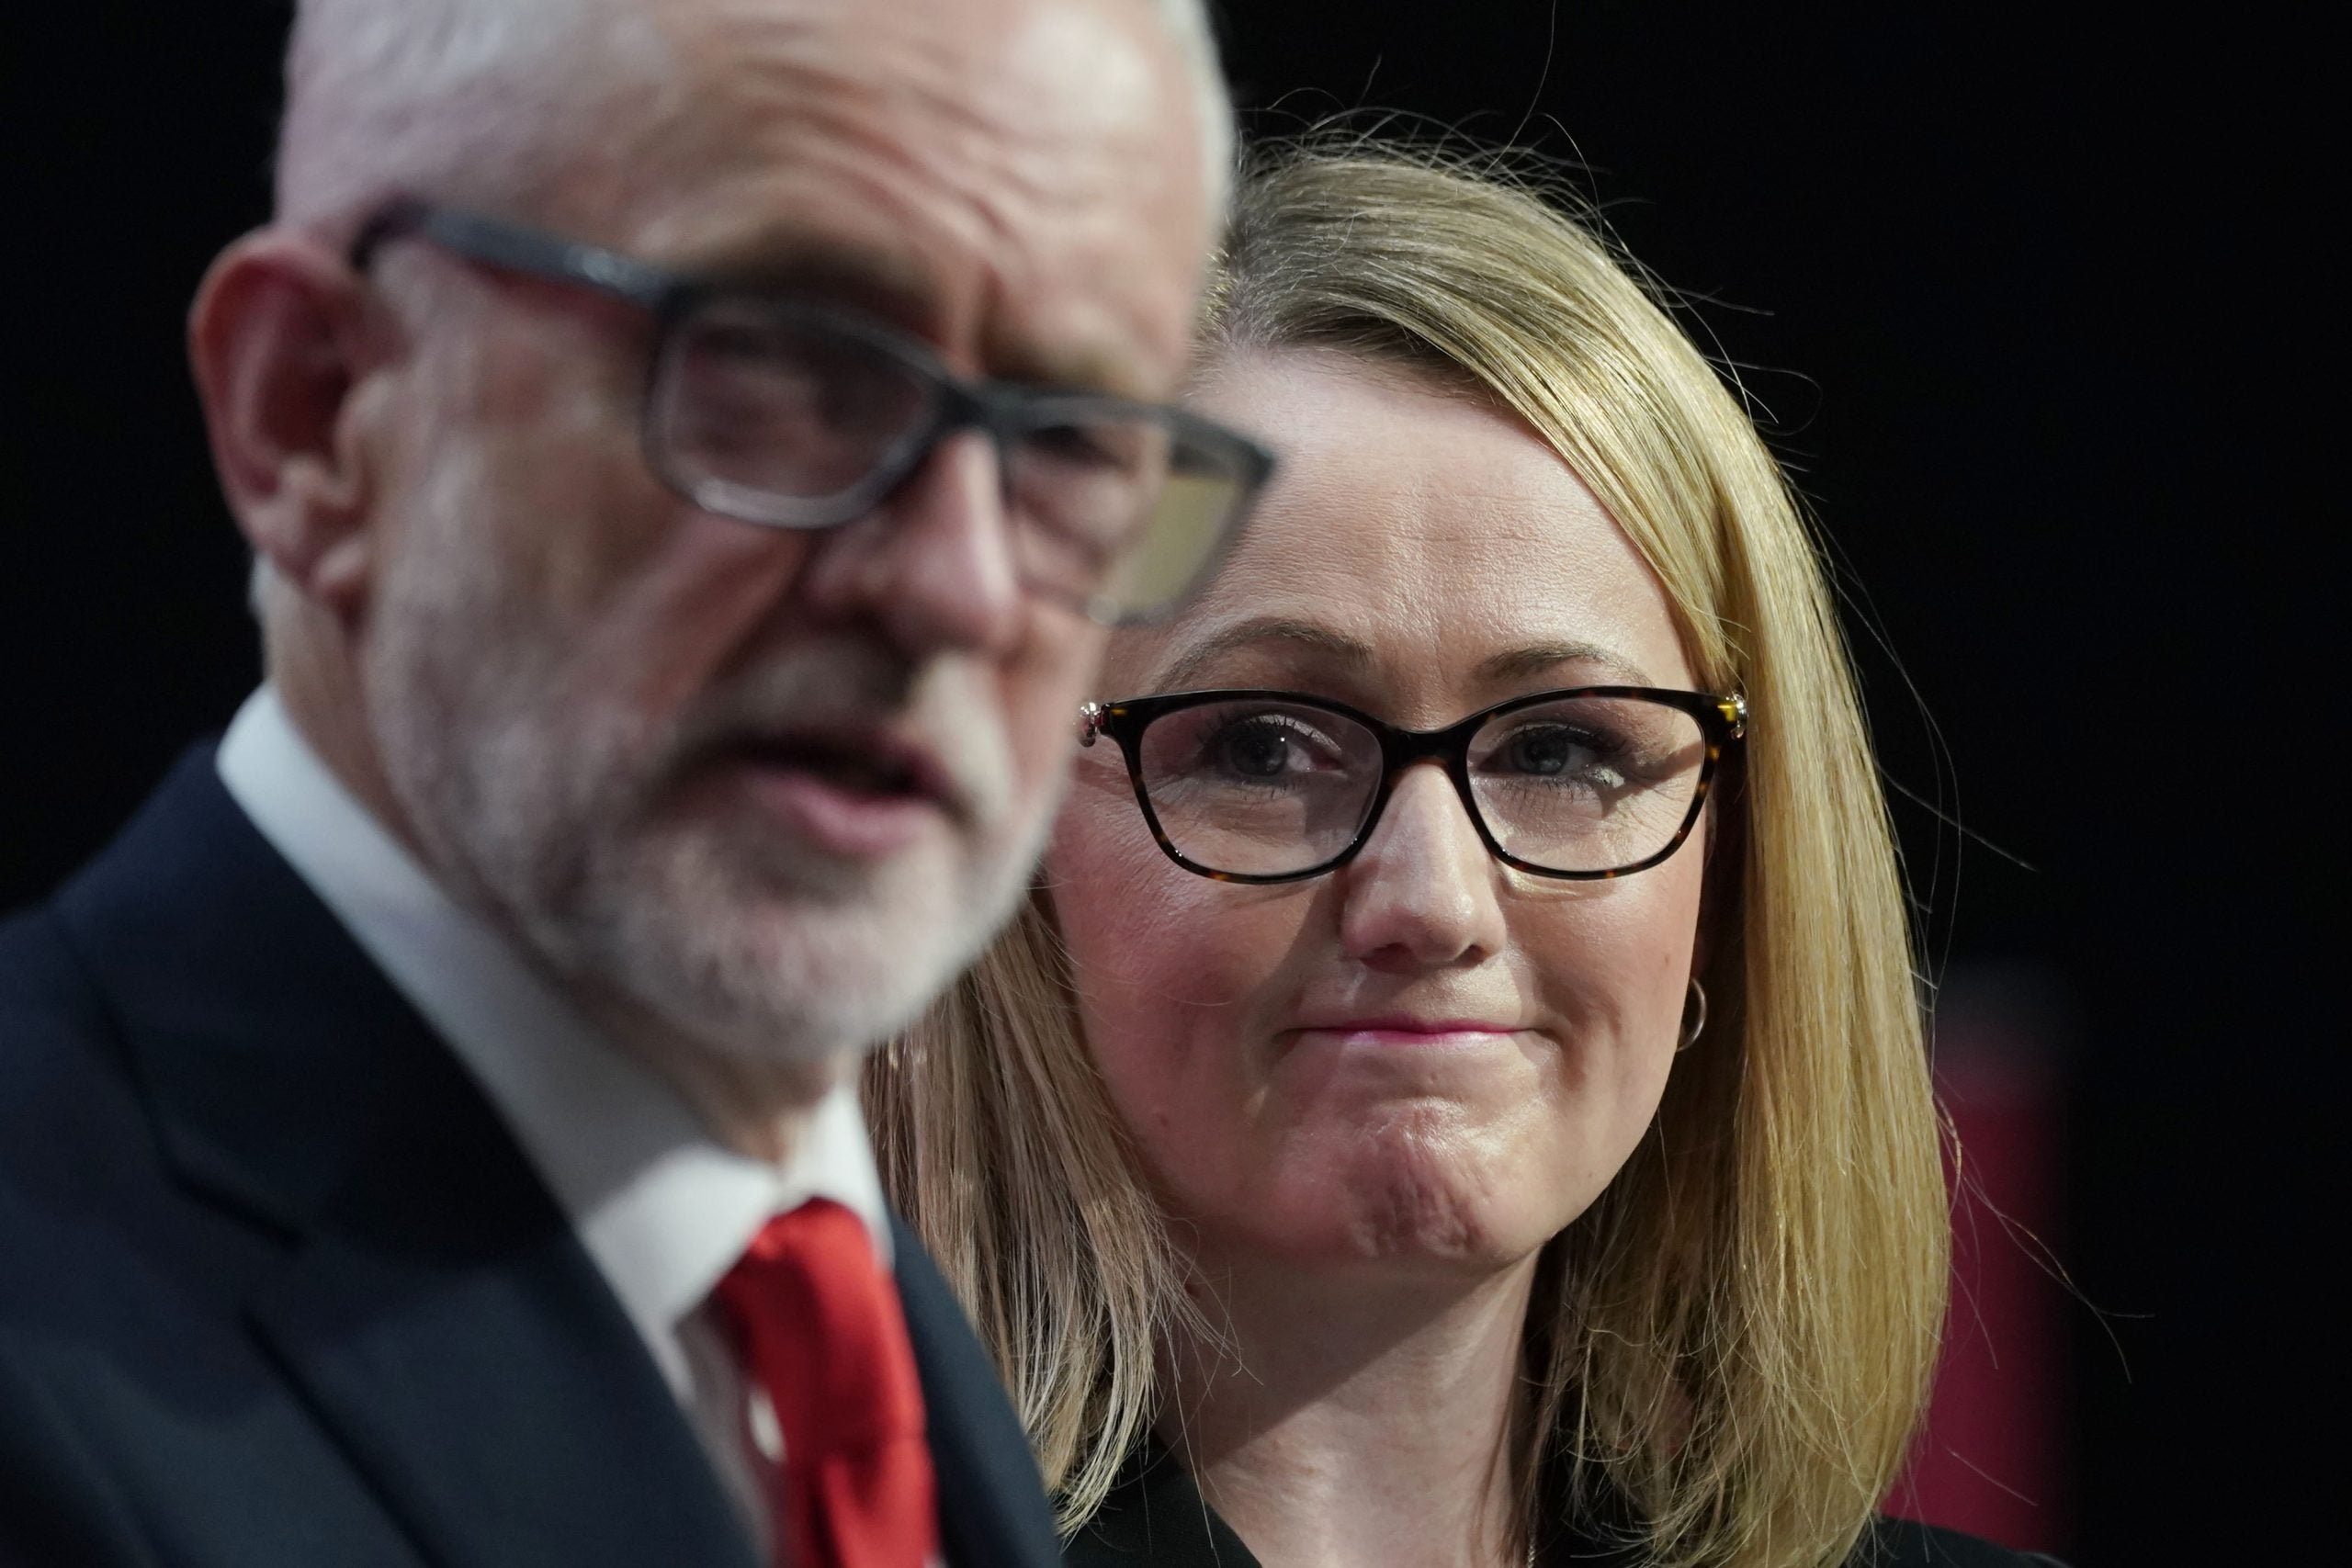 Rebecca Long-Bailey breaks her silence with a pitch for union support